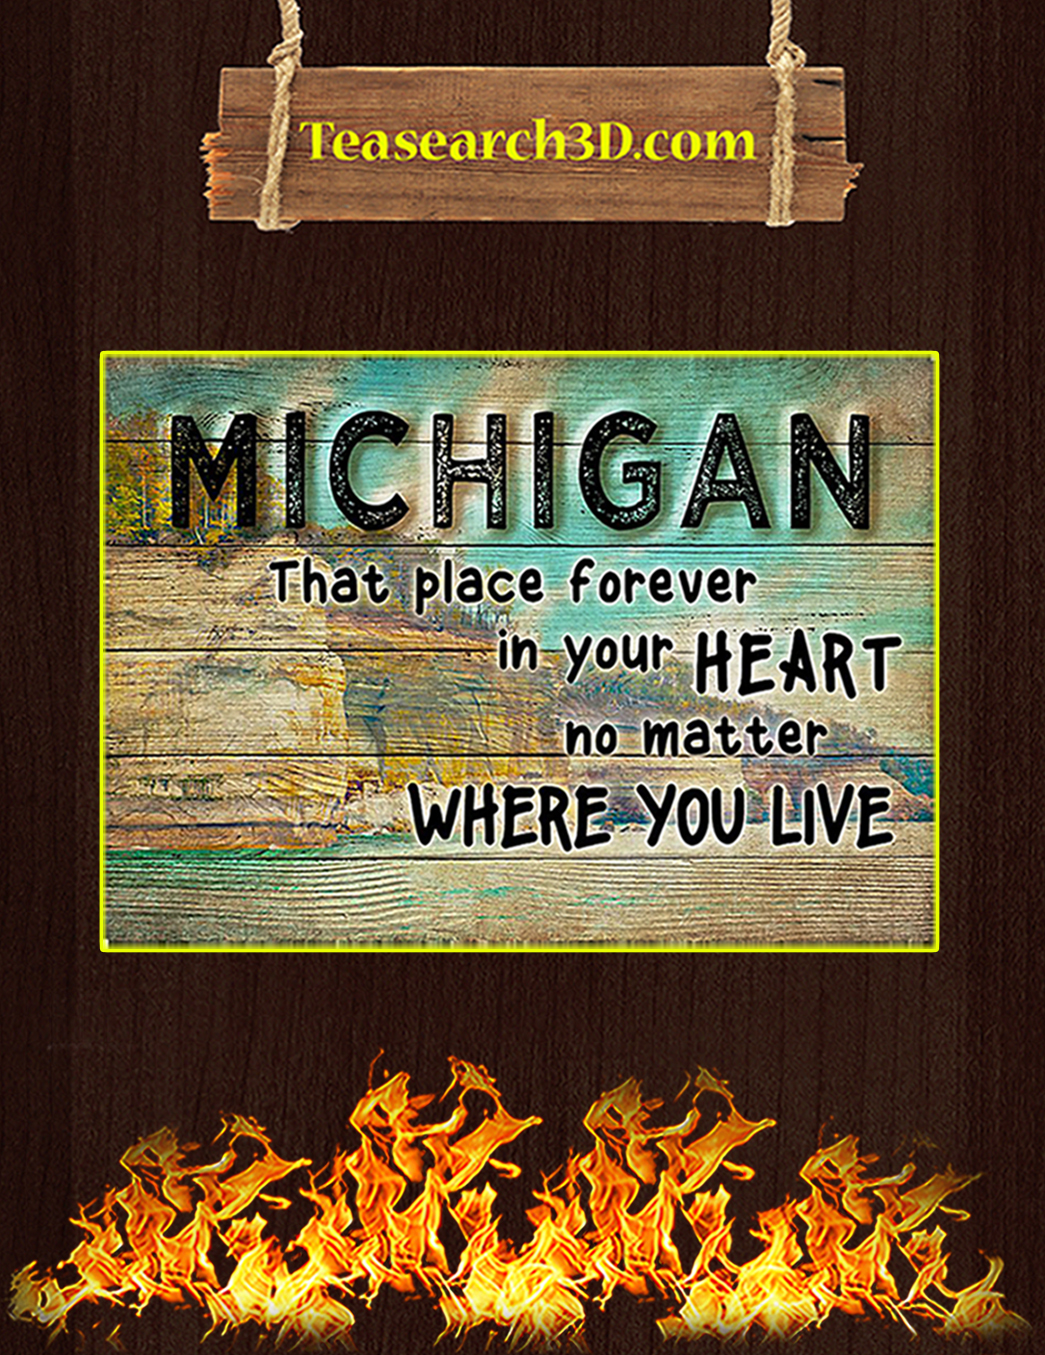 Michigan that place forever in your heart poster A1